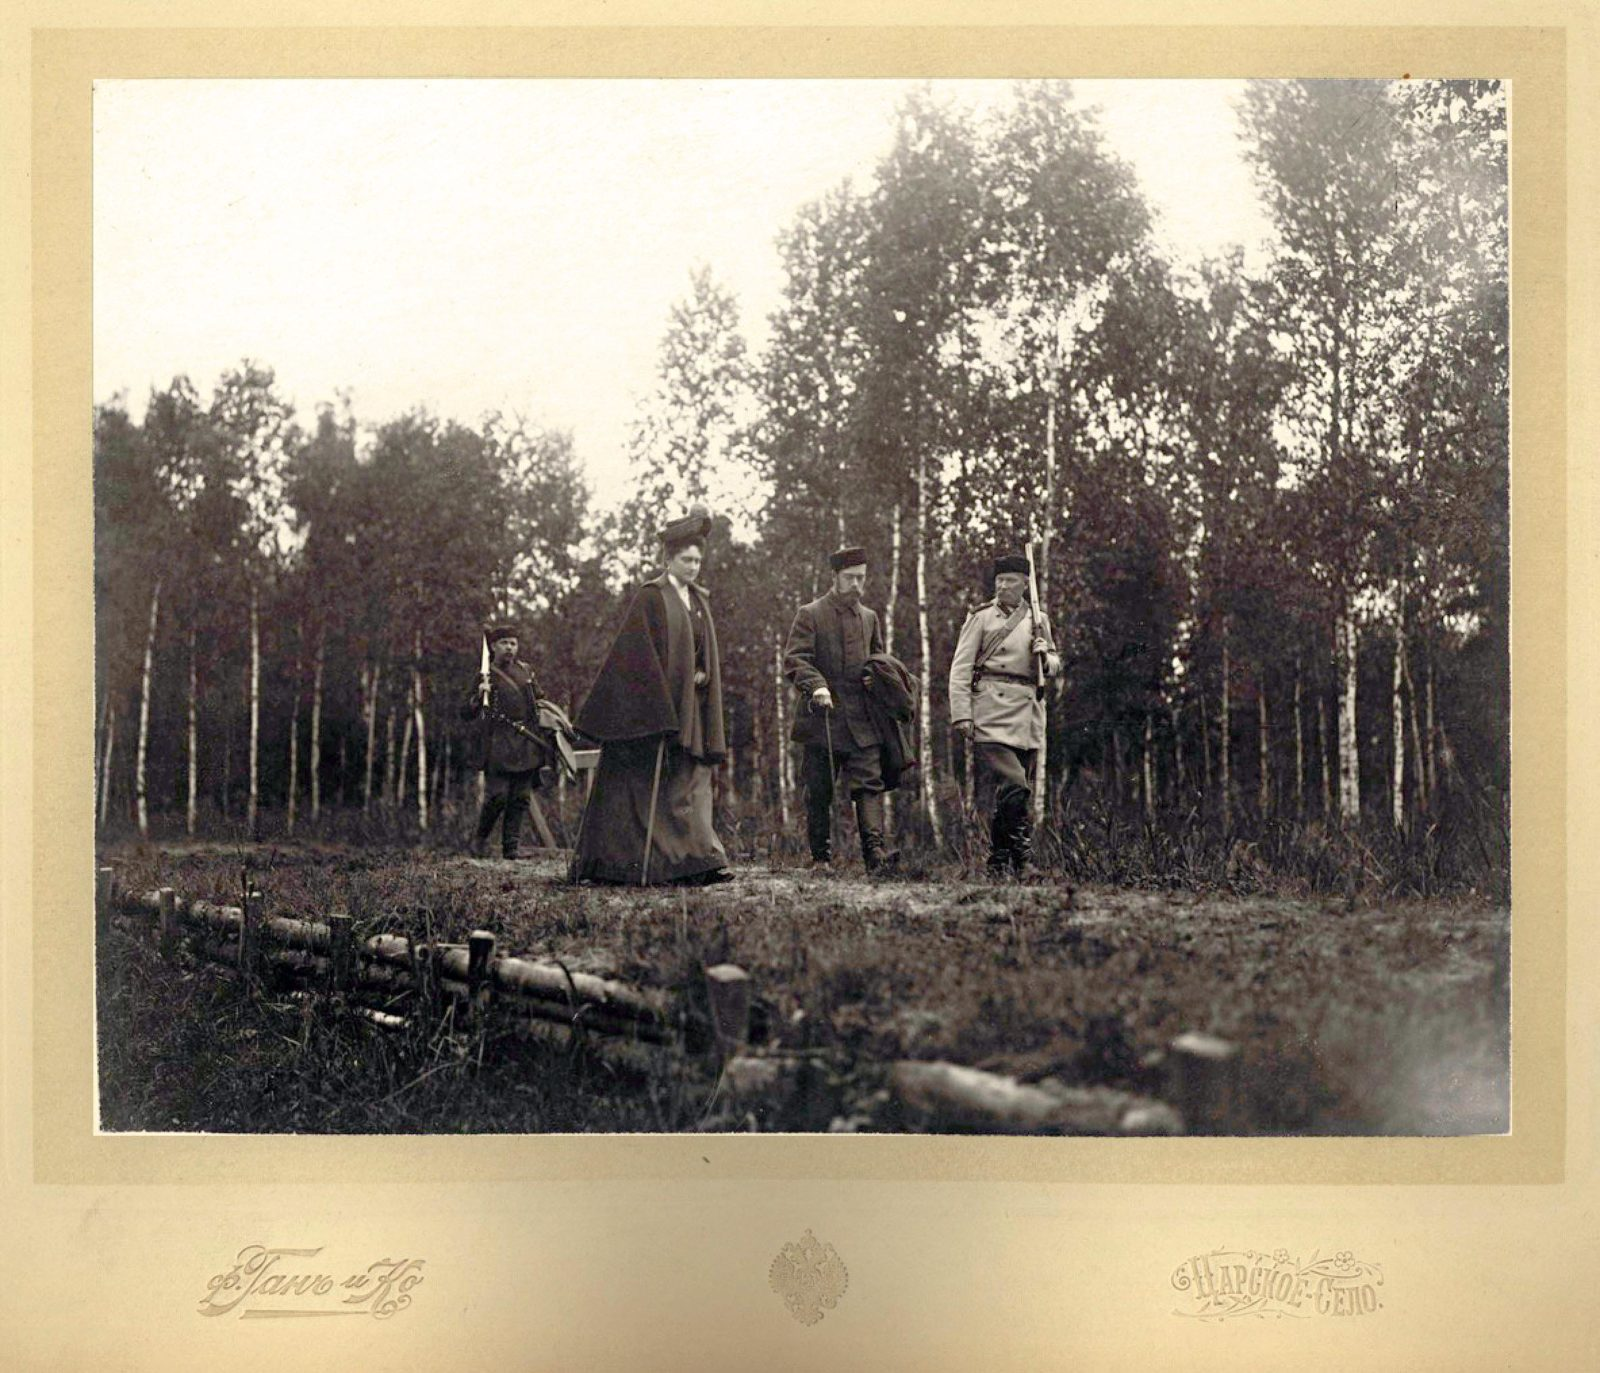 Nicholas II with his family members, hunting.